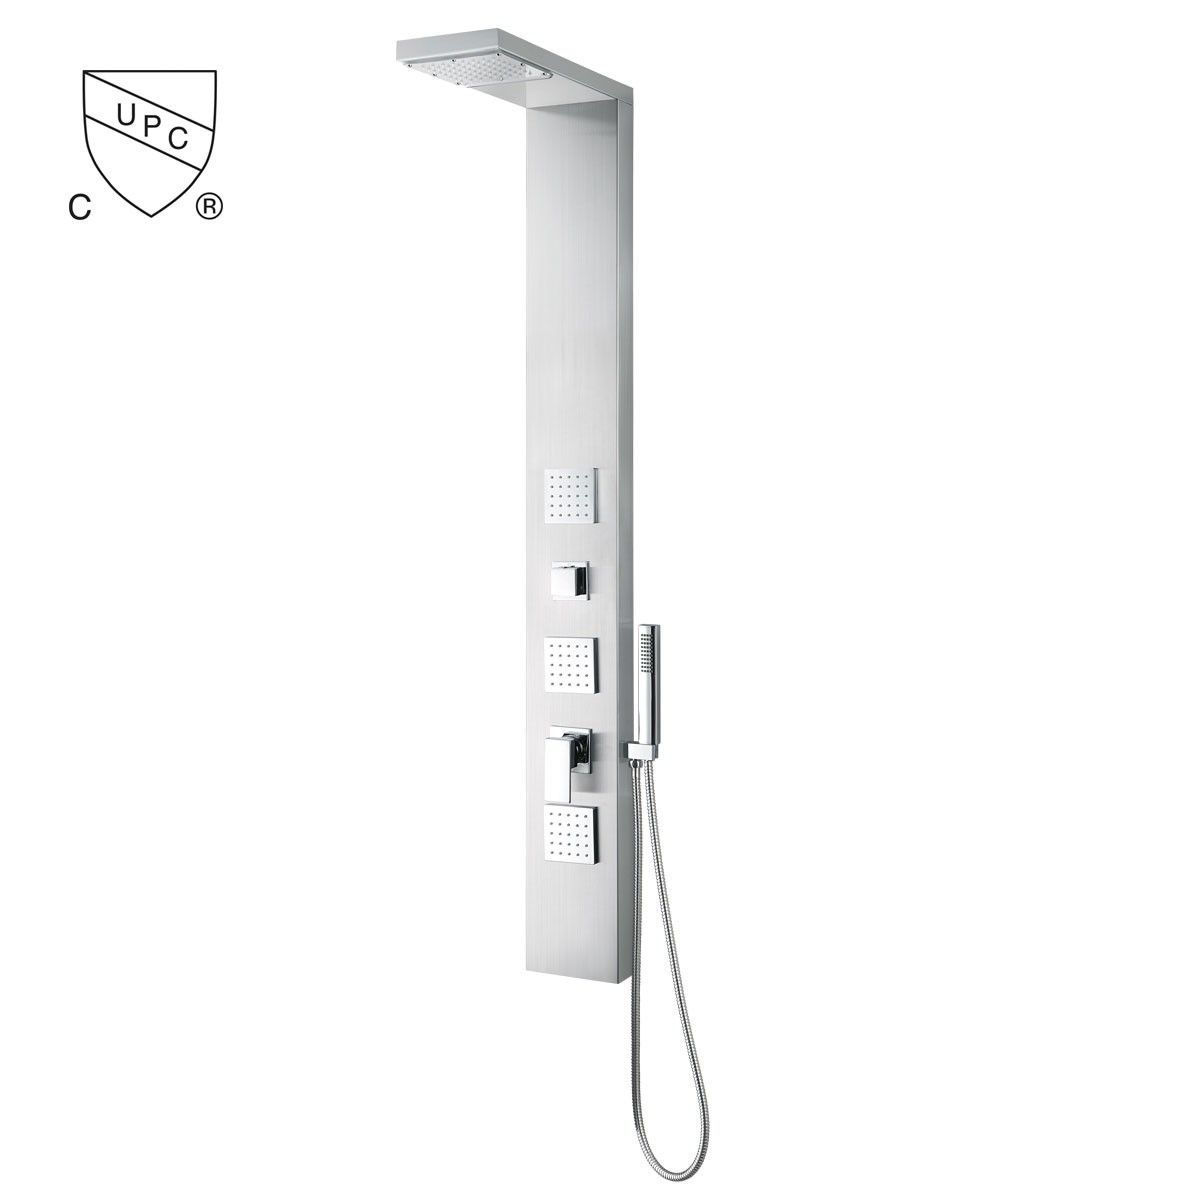 Thermostatic Mixing Valve Shower Panel System - Brushed Stainless Steel (JX-9851)